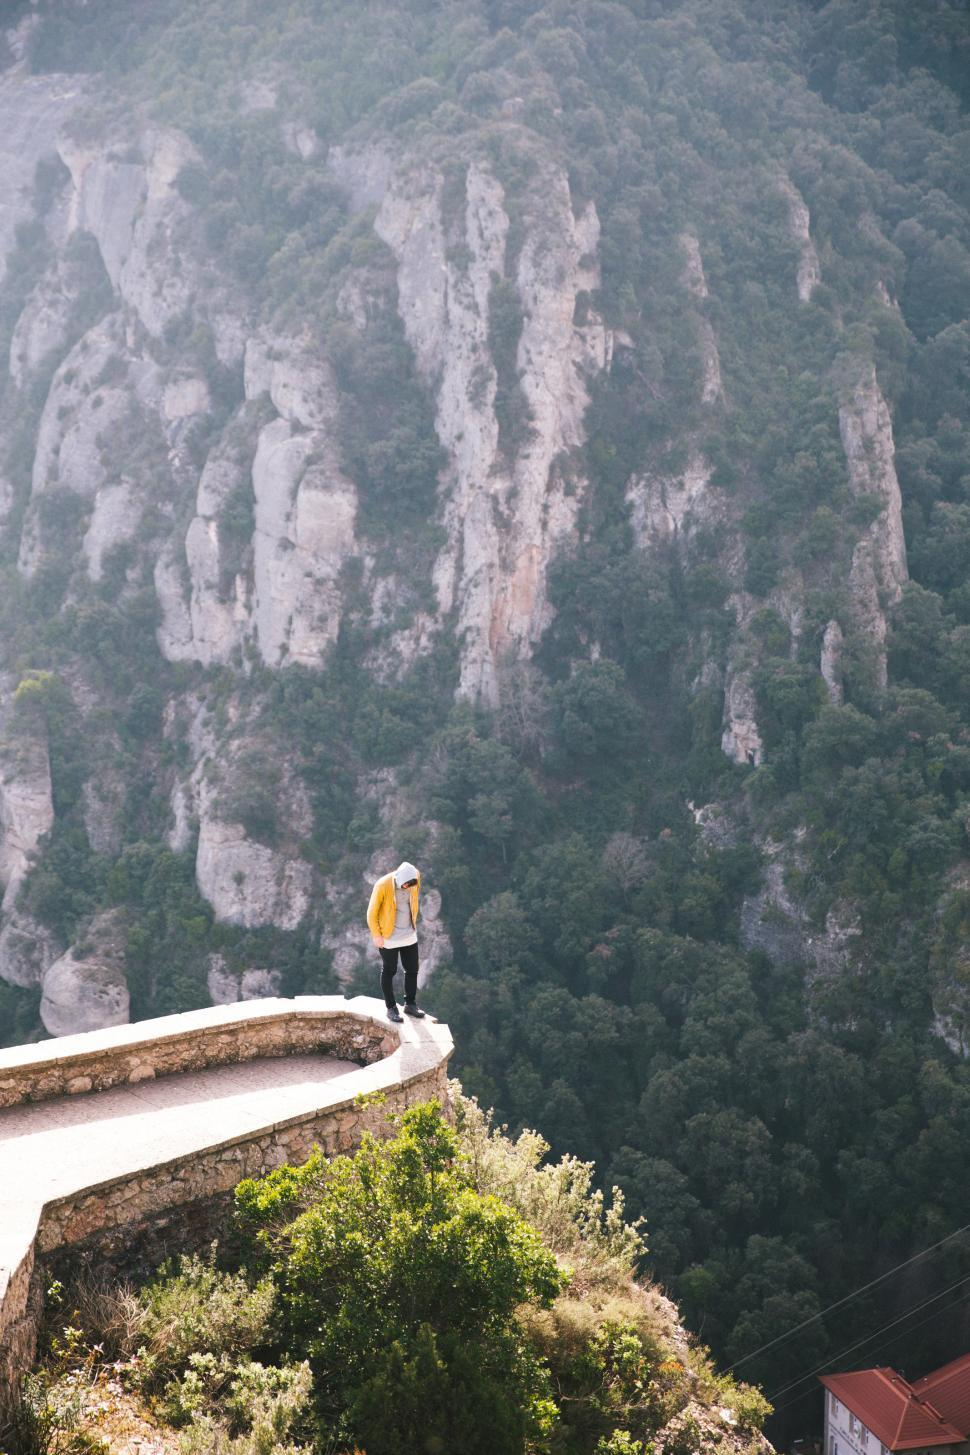 Download Free Stock HD Photo of A hiker standing on the edge of a viewing platform in Montserrat Online